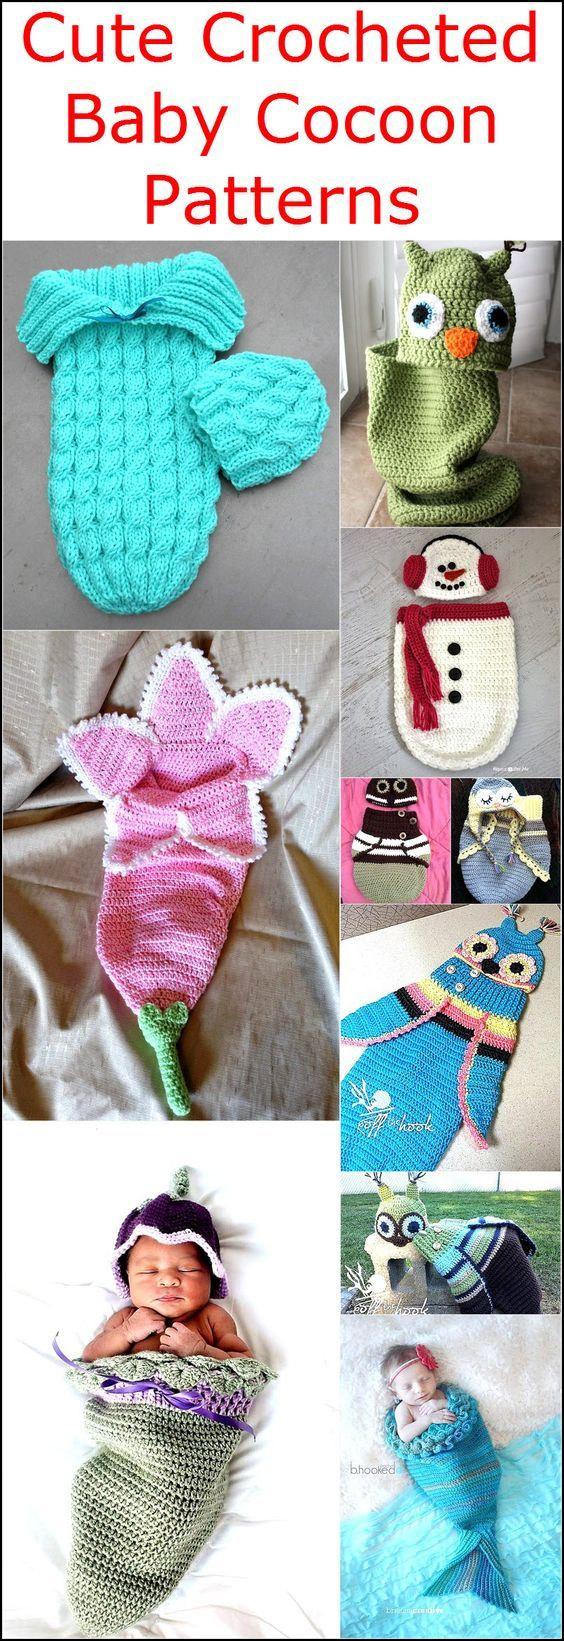 Cottage snuggle sack and hat crochet baby baby cocoon and sacks - Crocheted Baby Cocoon Patterns Are The Best Way To Cover The Whole Body Of The Baby